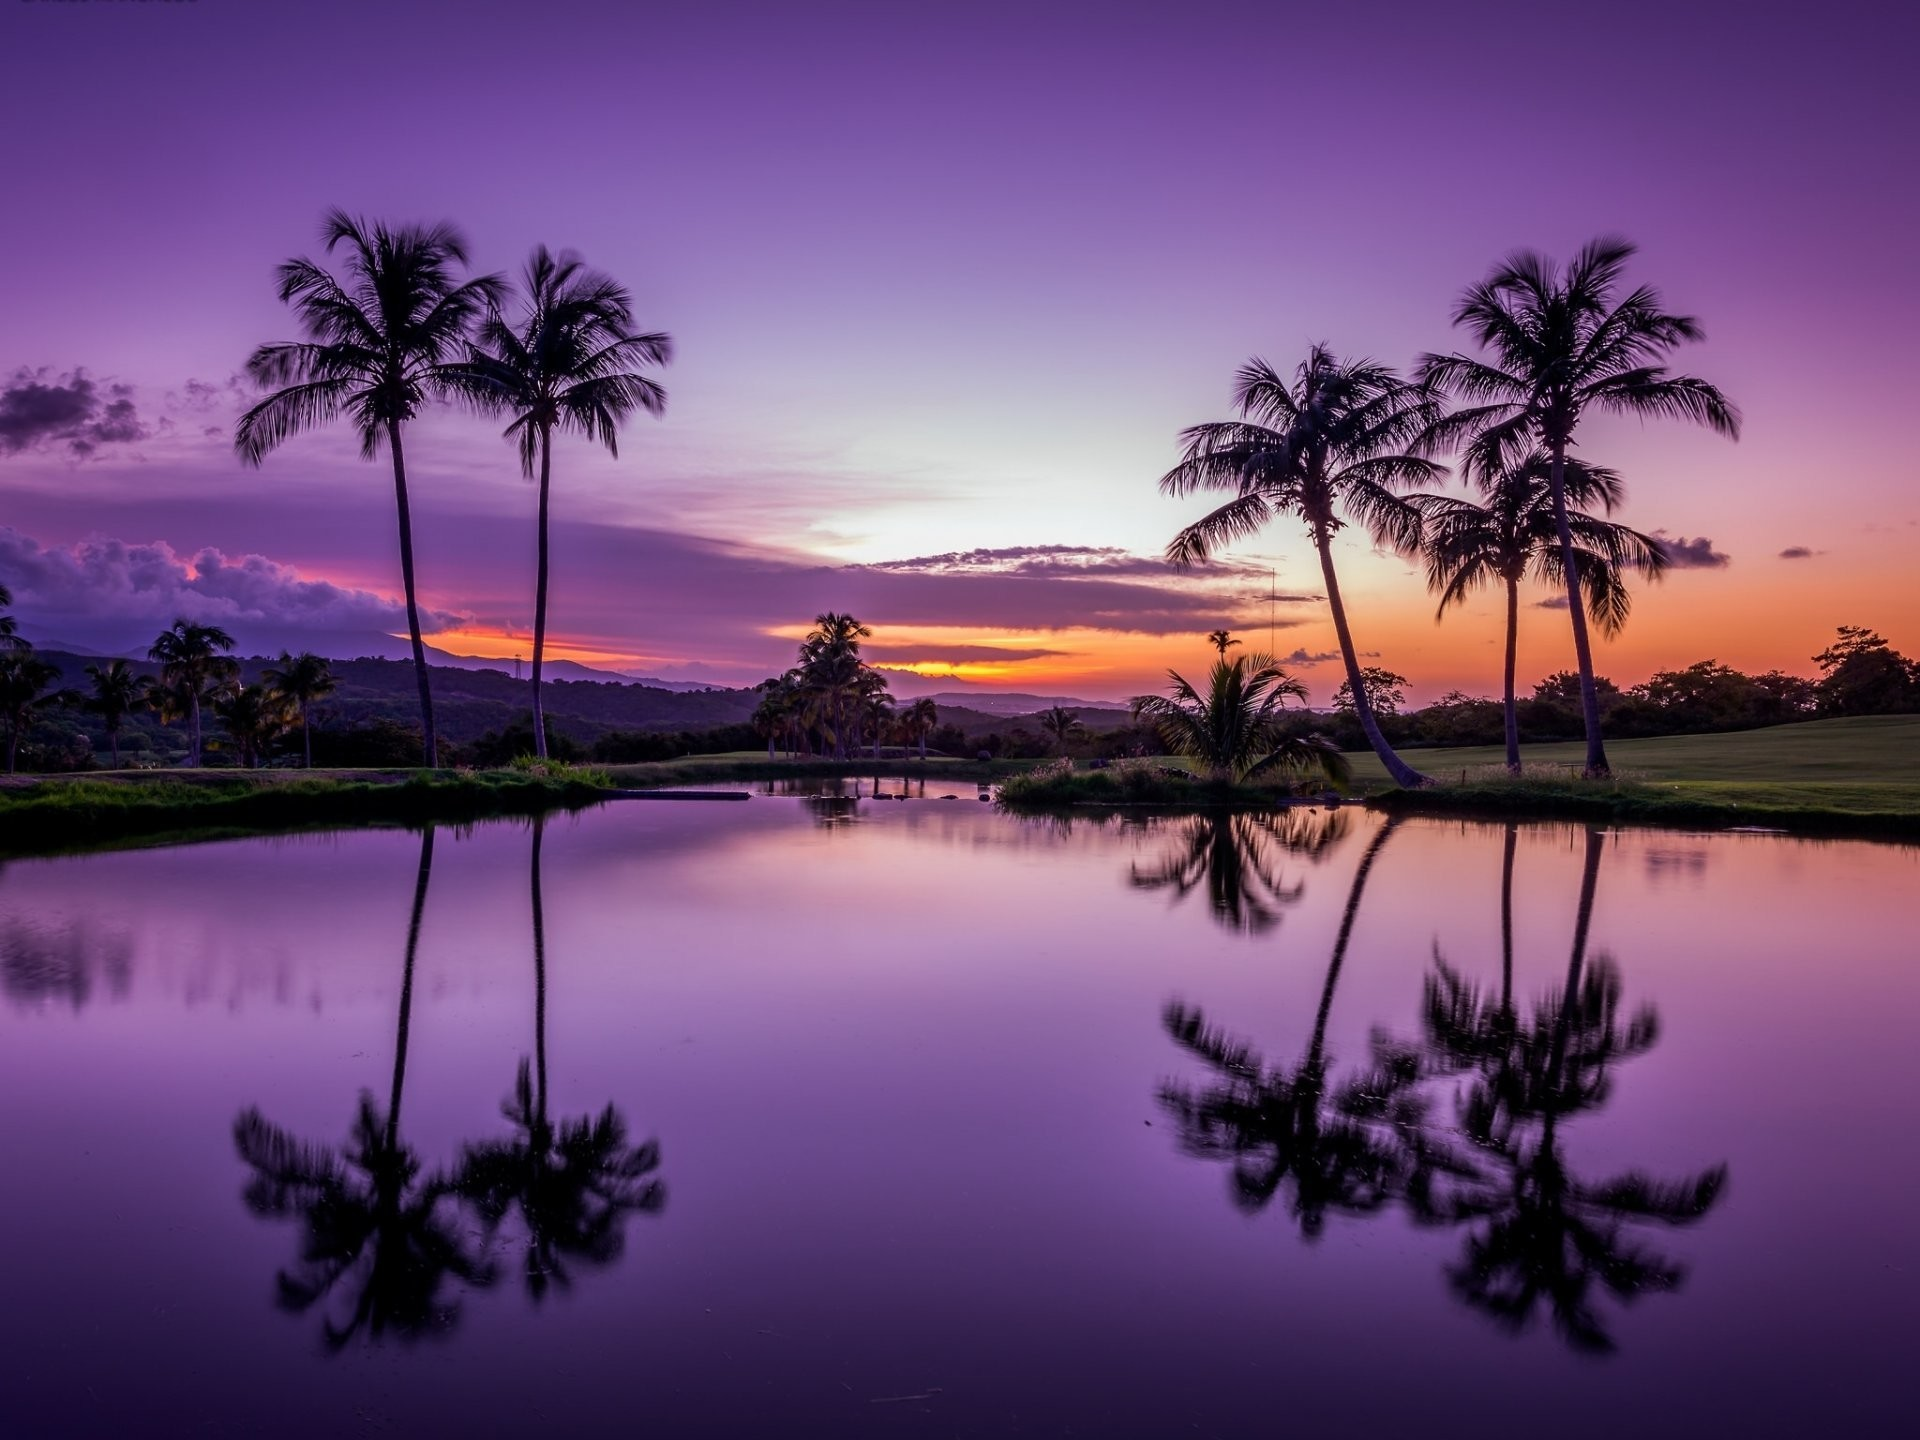 1920x1440 fajardo puerto rico fajardo puerto rico tropics palm sunset water reflection